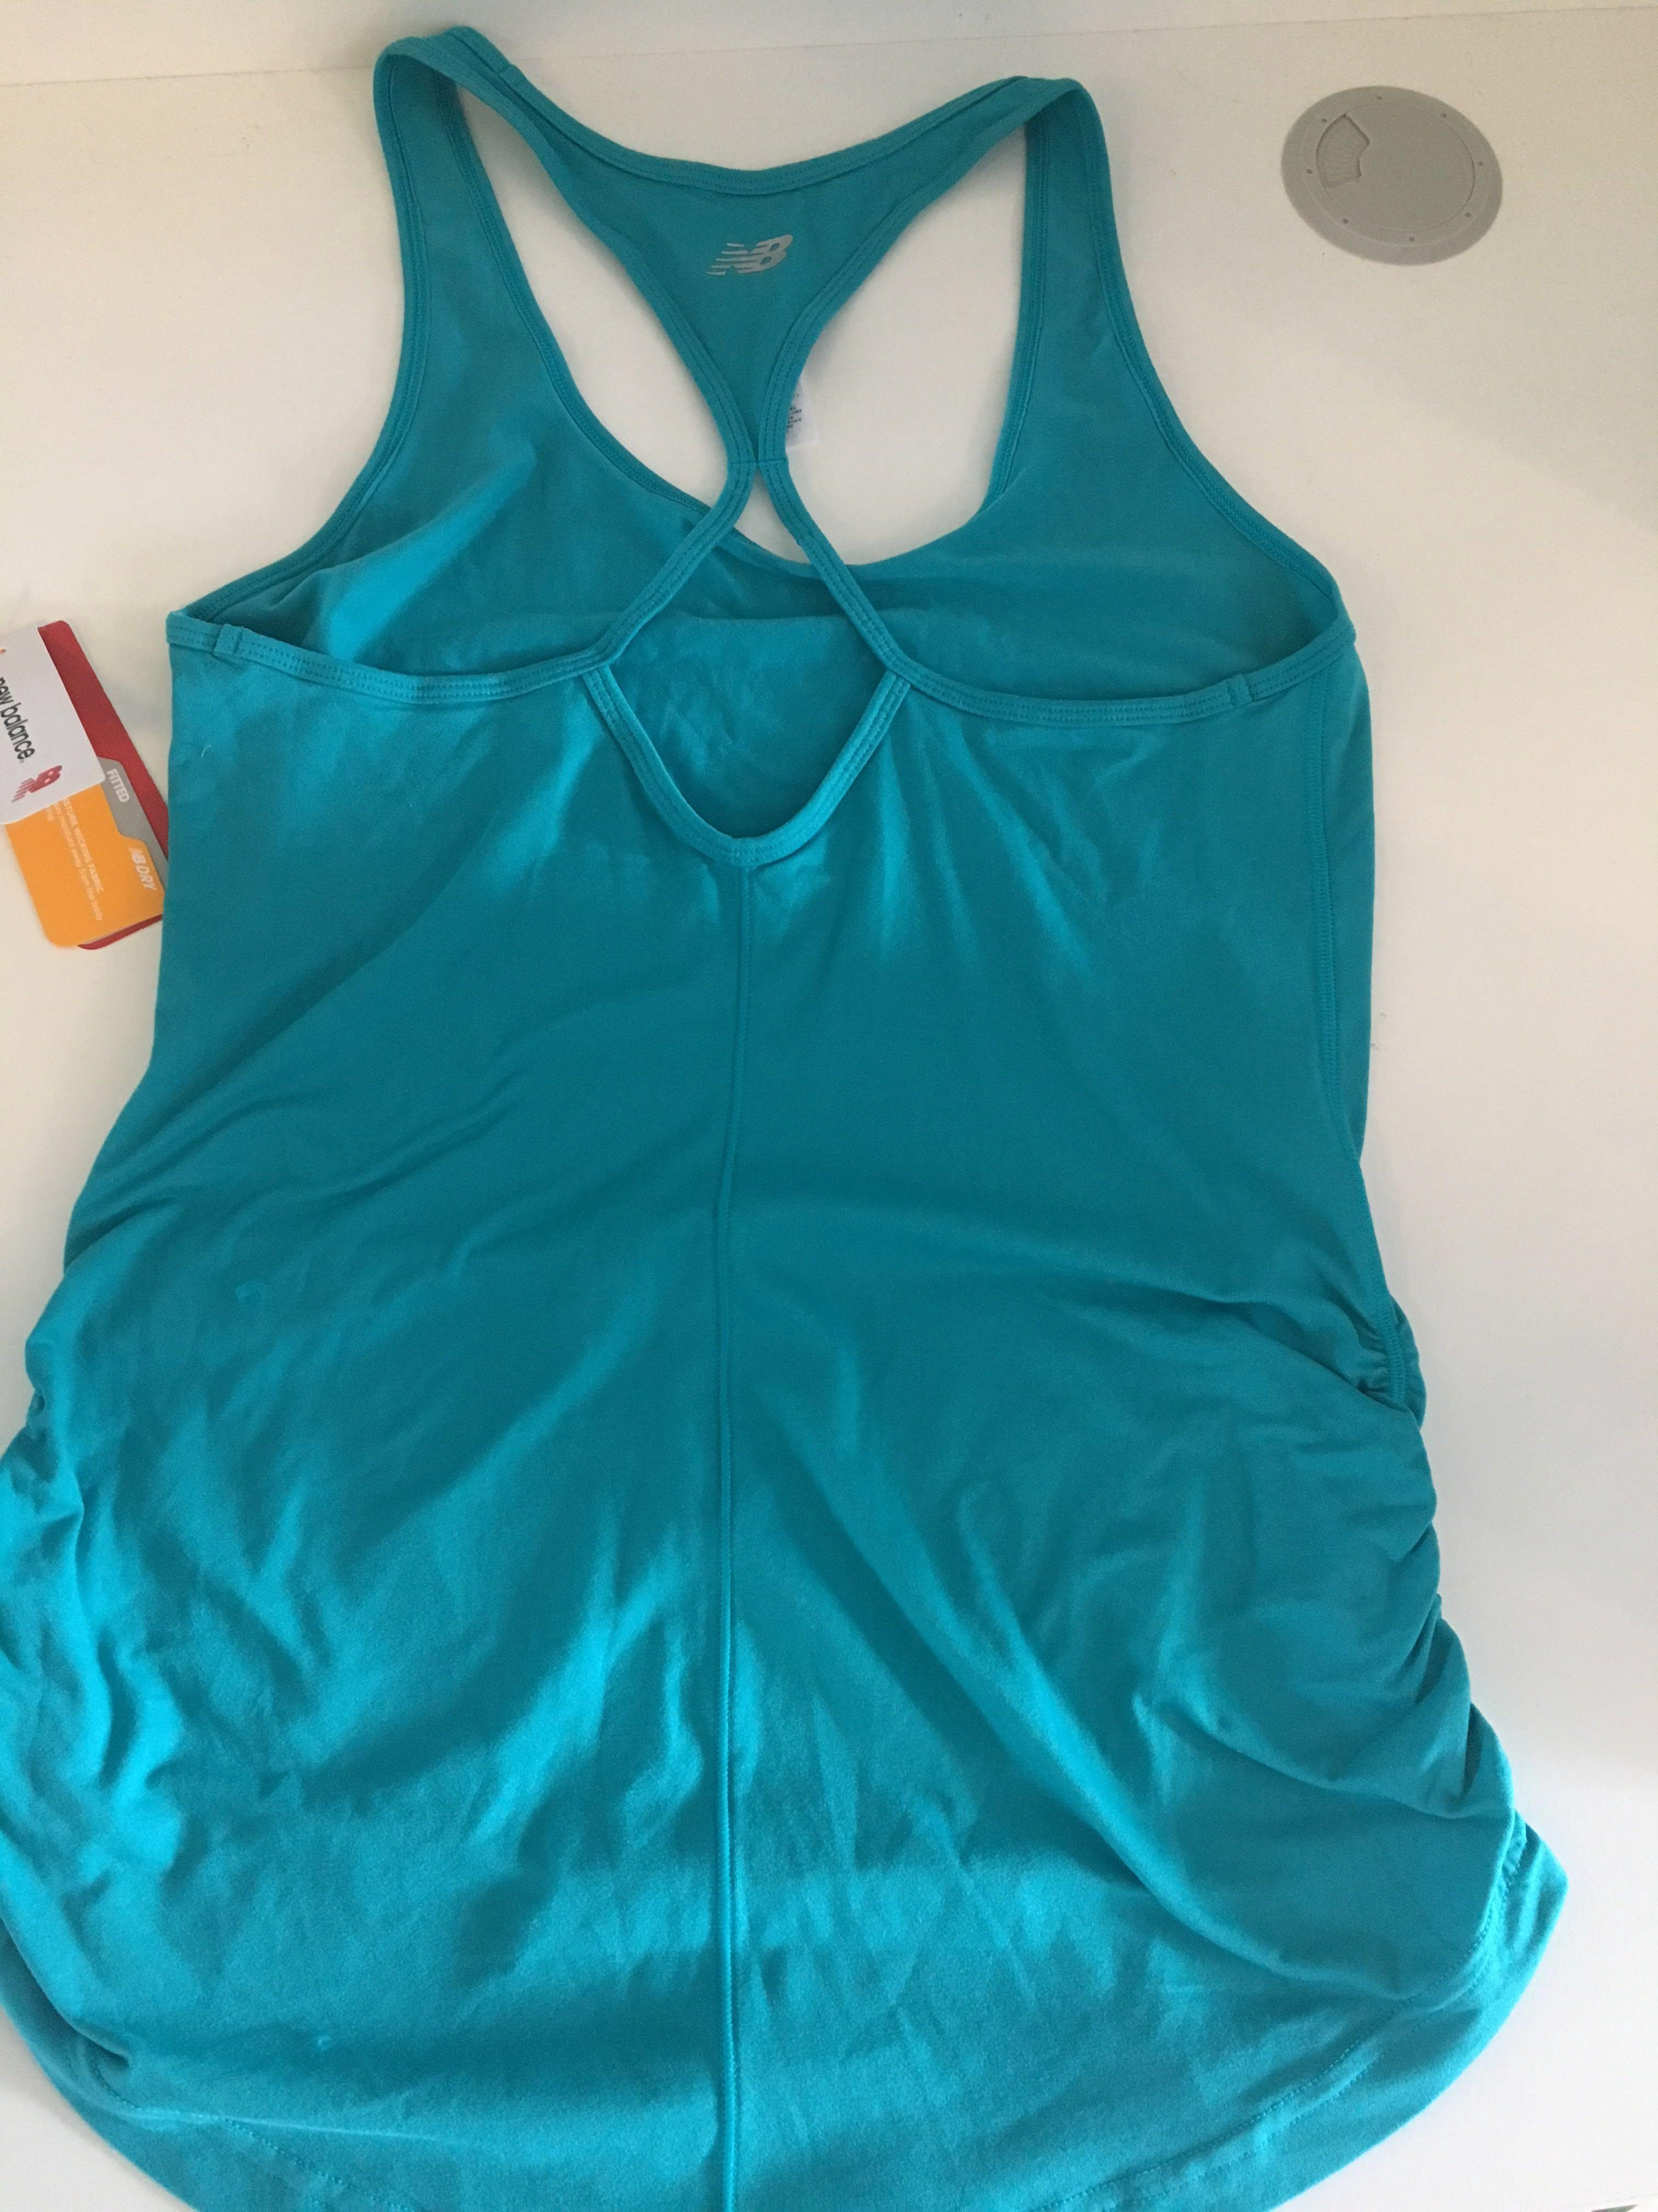 New balance singlet top blue size small new with tags